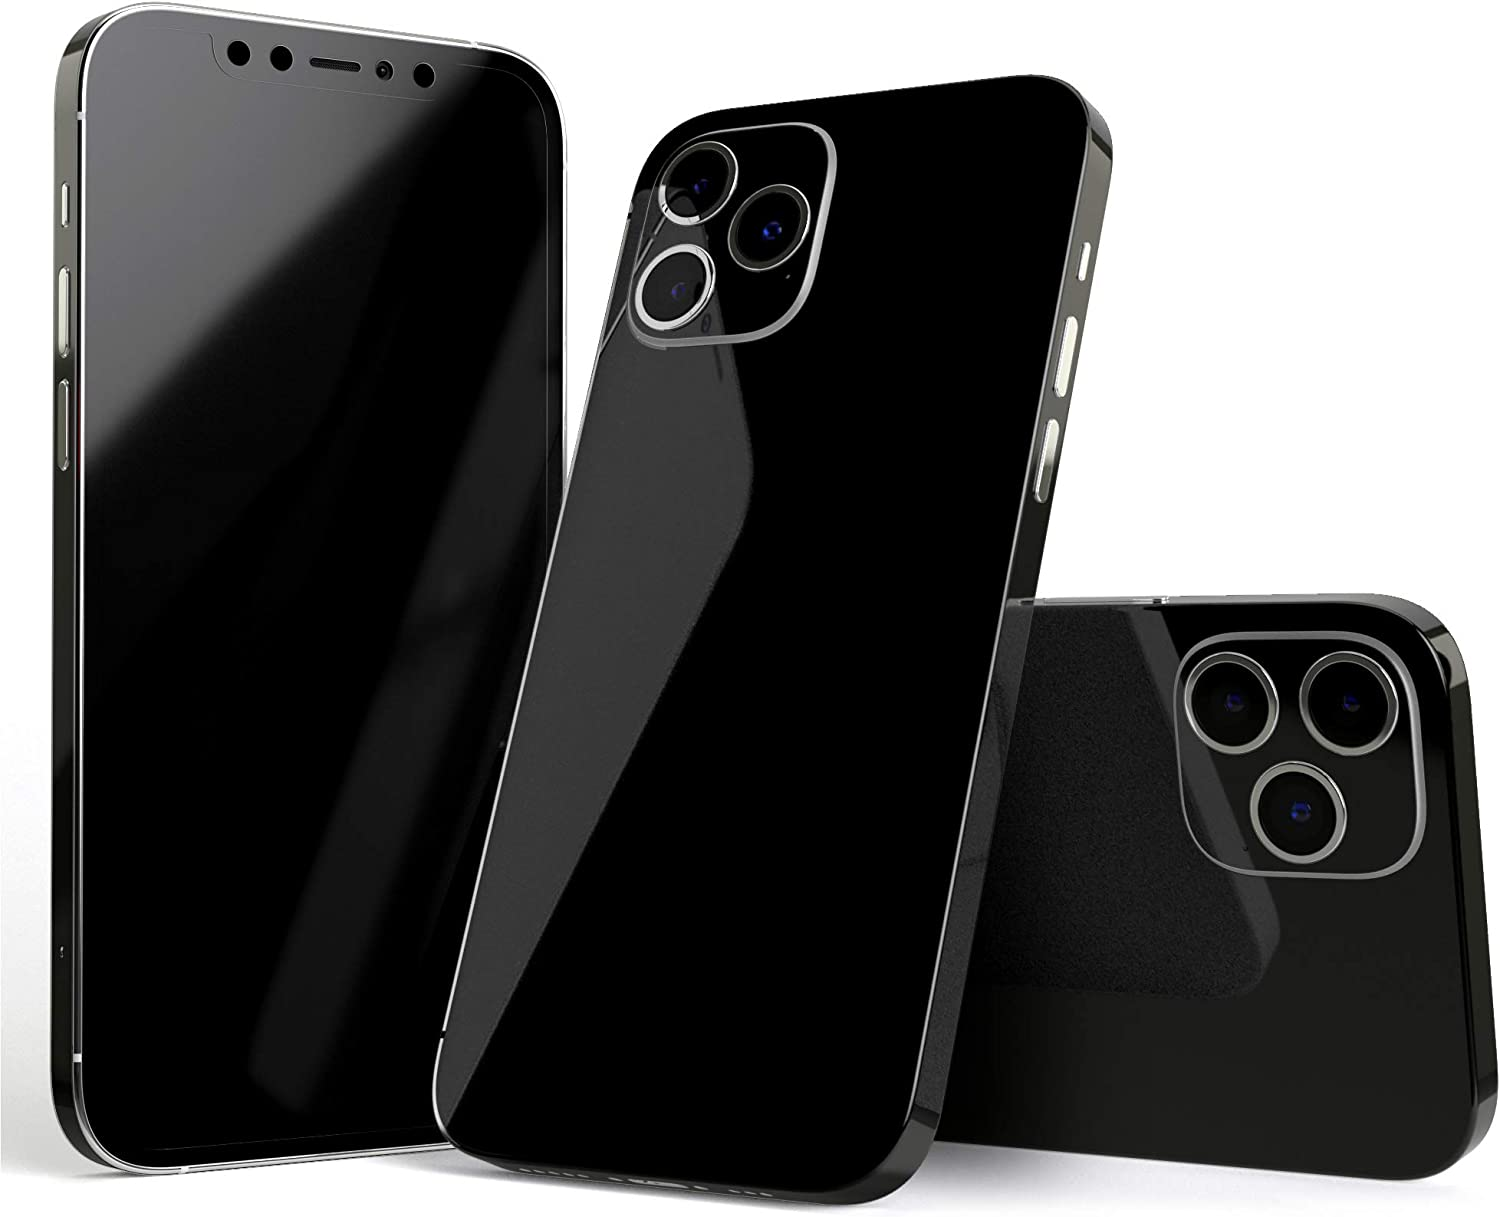 Design Skinz Solid State Black - Full Body Skin Decal Wrap Kit Compatible with The Apple iPhone XR (Full-Body, Screen Trim & Back Glass Skin)